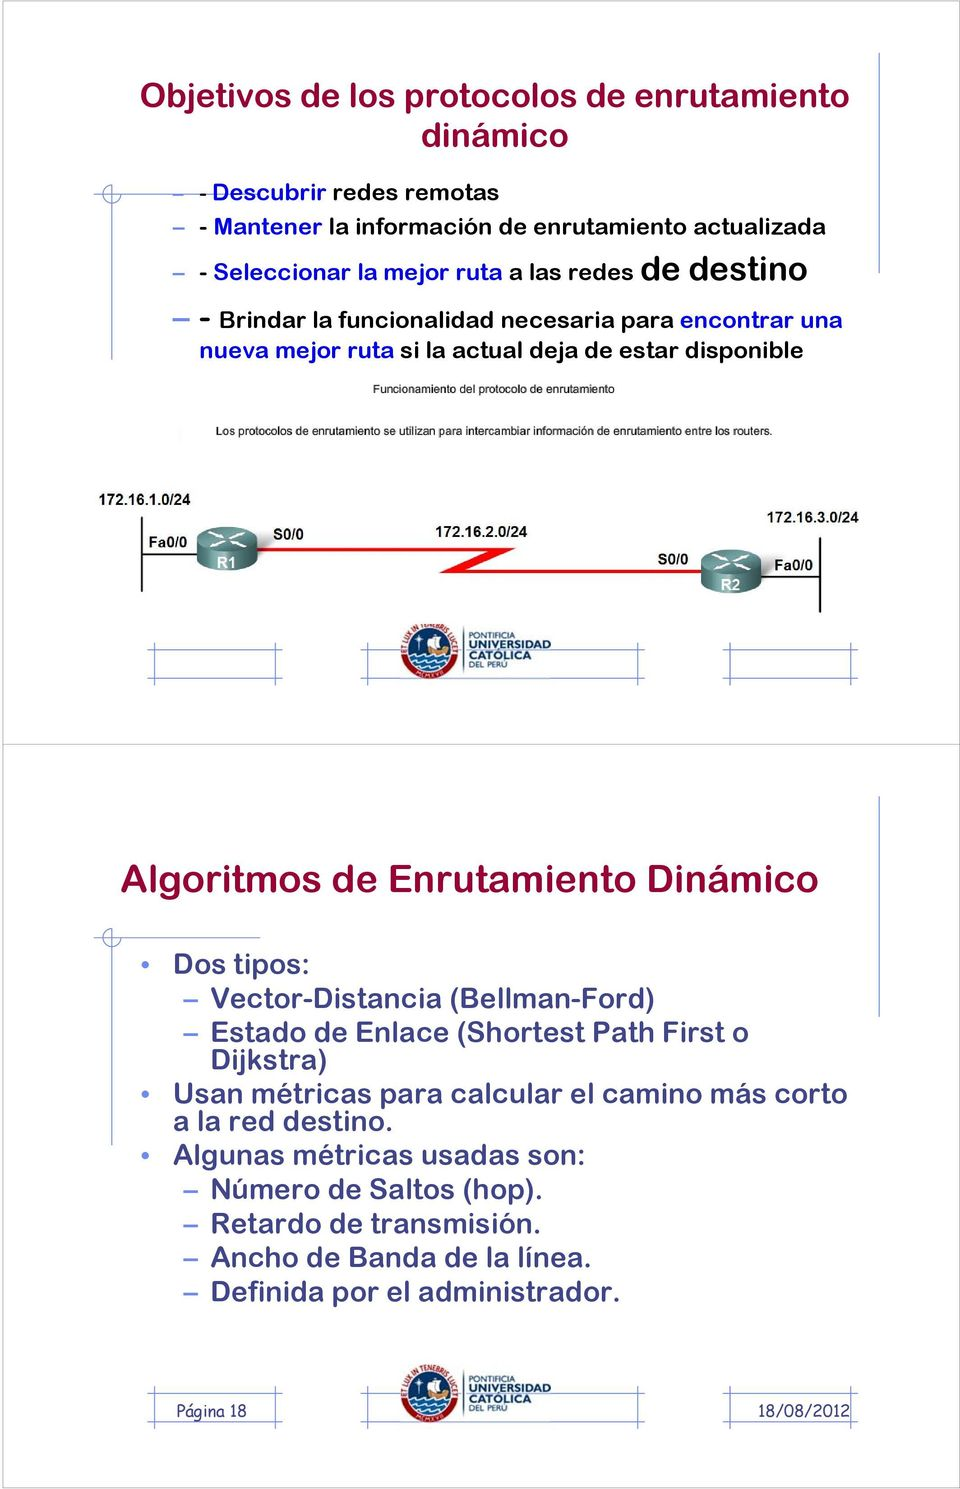 Enrutamiento Dinámico Dos tipos: Vector-Distancia (Bellman-Ford) Estado de Enlace (Shortest Path First o Dijkstra) Usan métricas para calcular el camino más